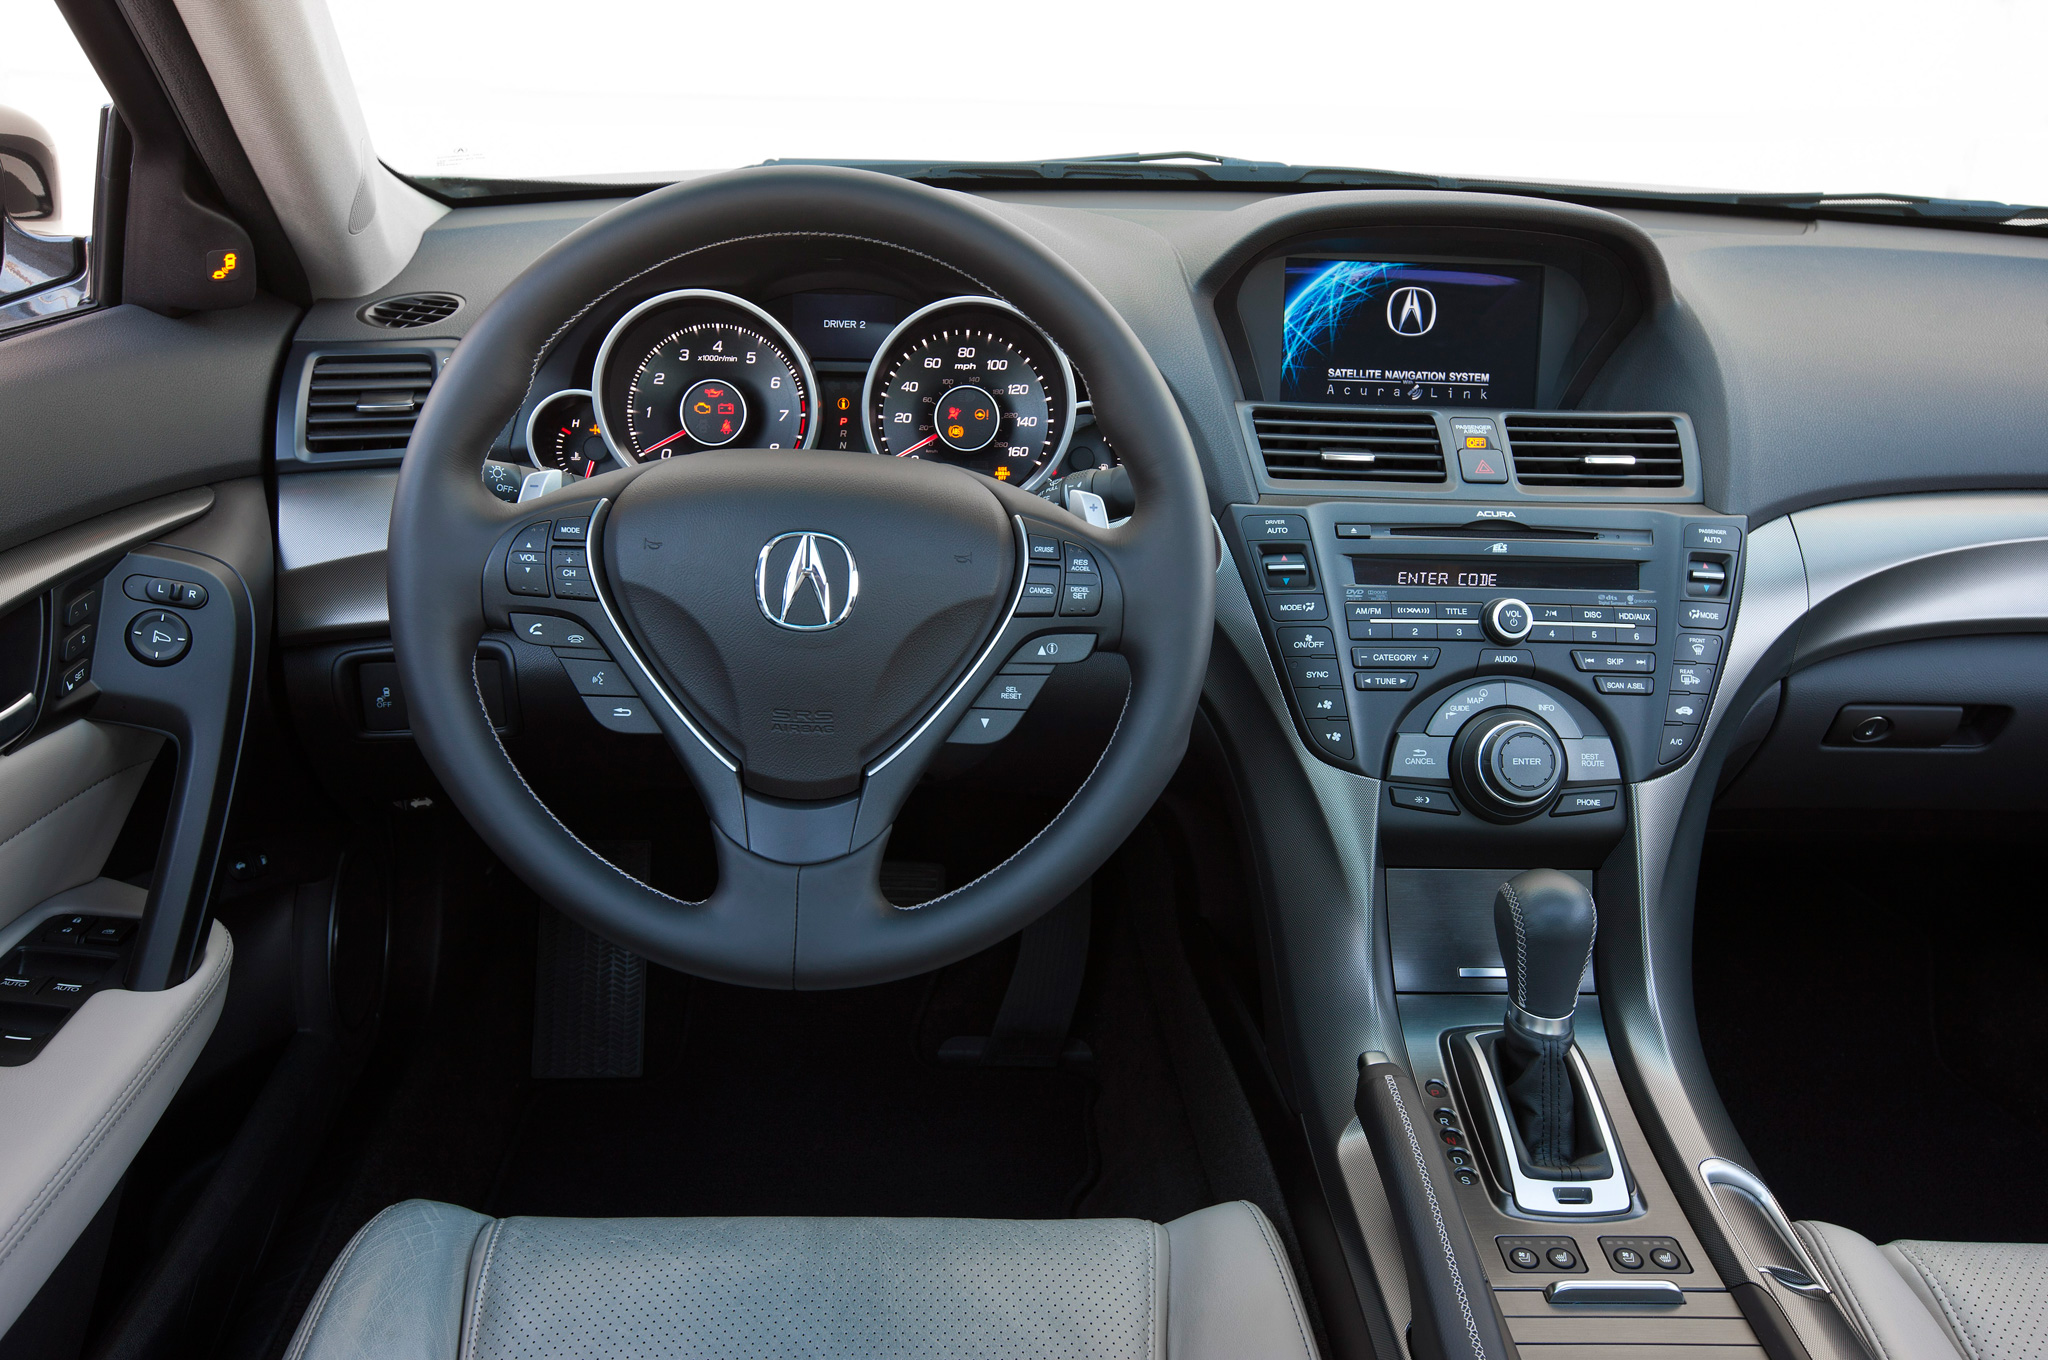 2014 Acura TL Information and photos ZombieDrive